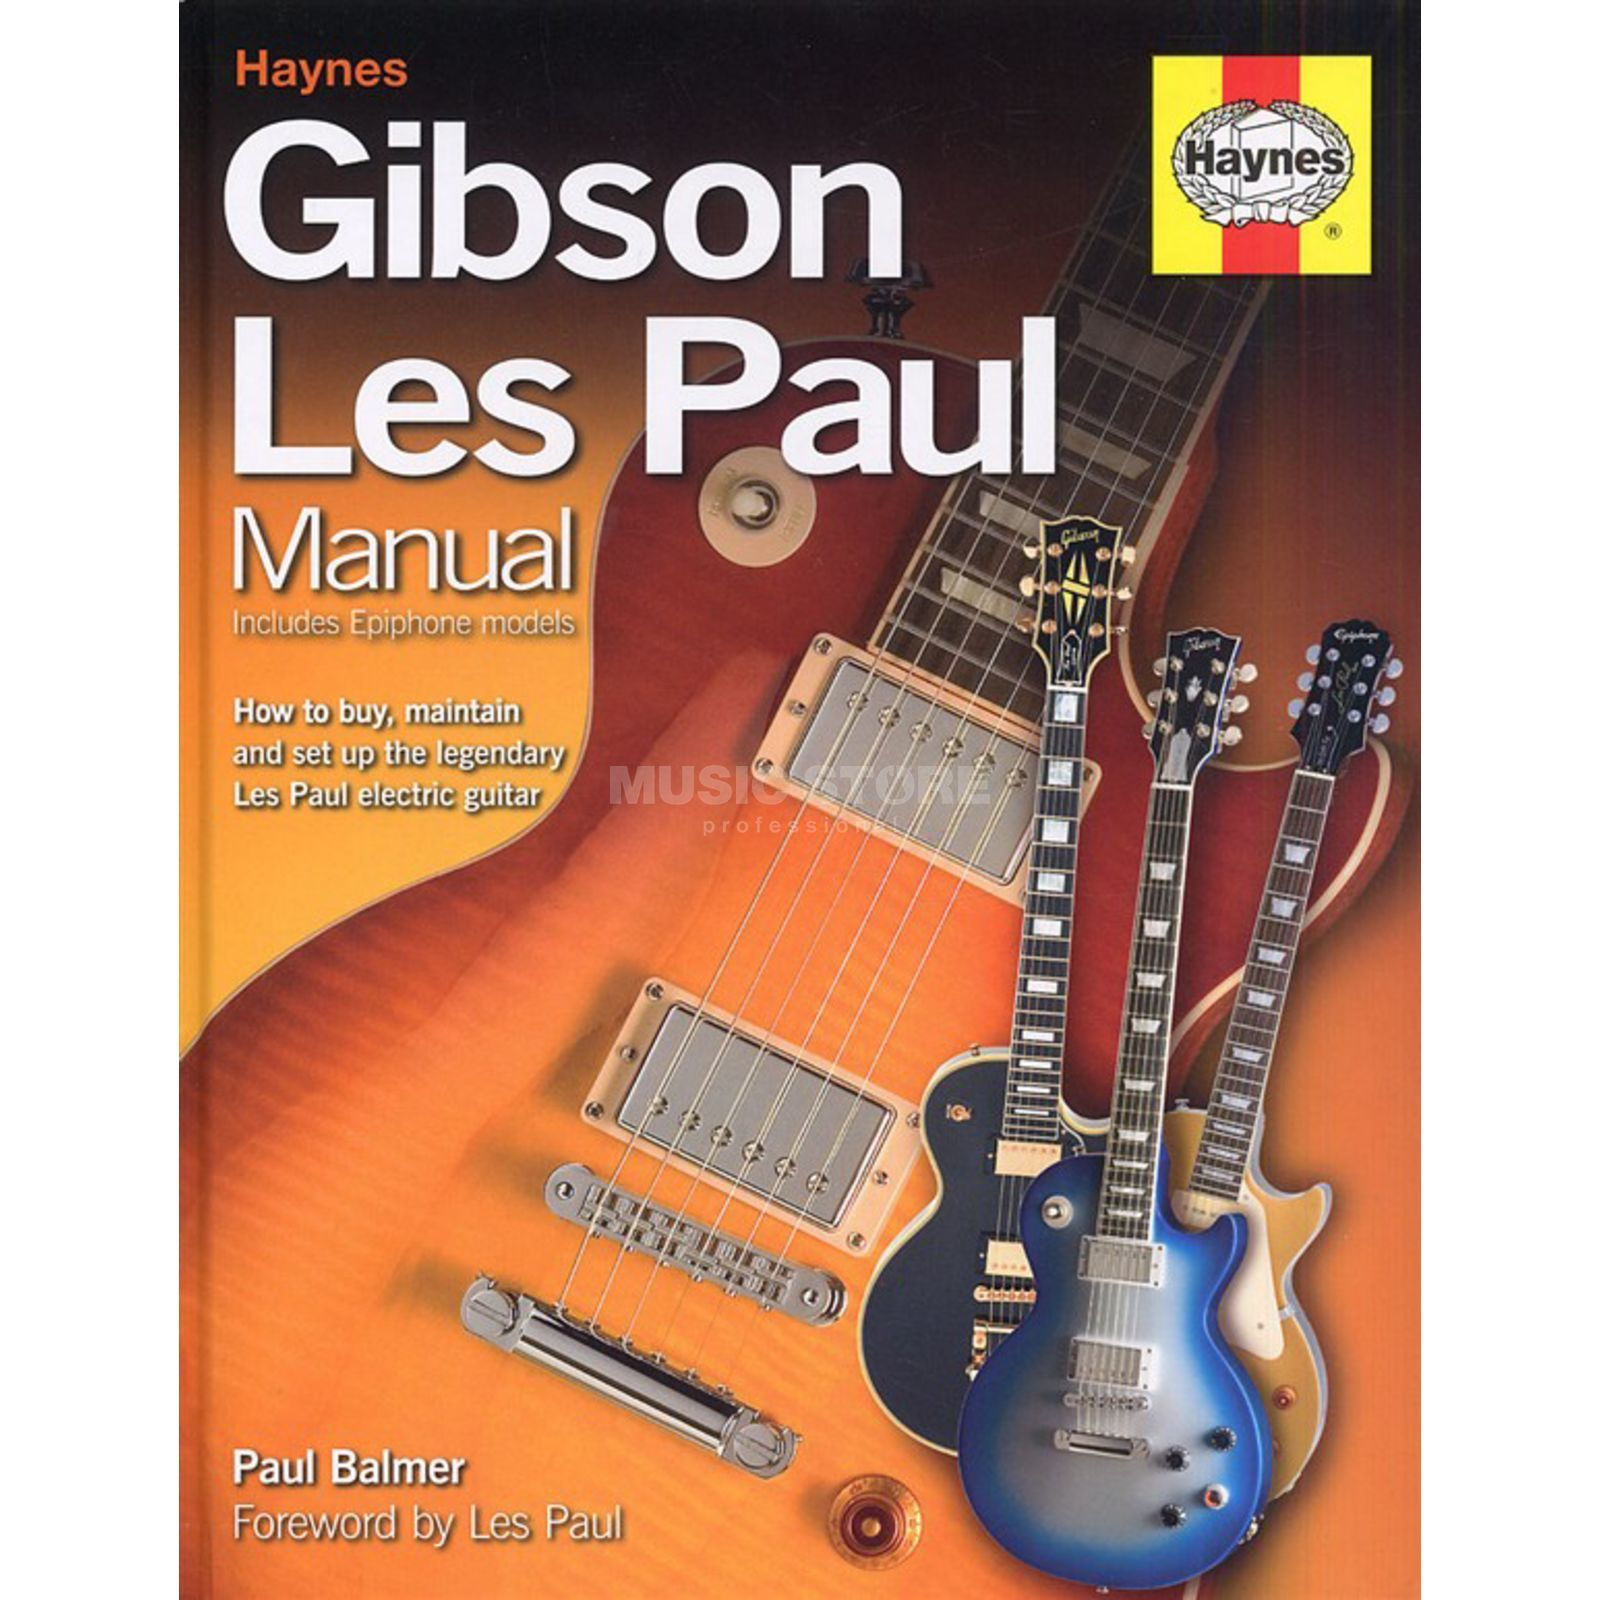 Haynes Publishing Gibson Les Paul Manual Paul Balmer Produktbild